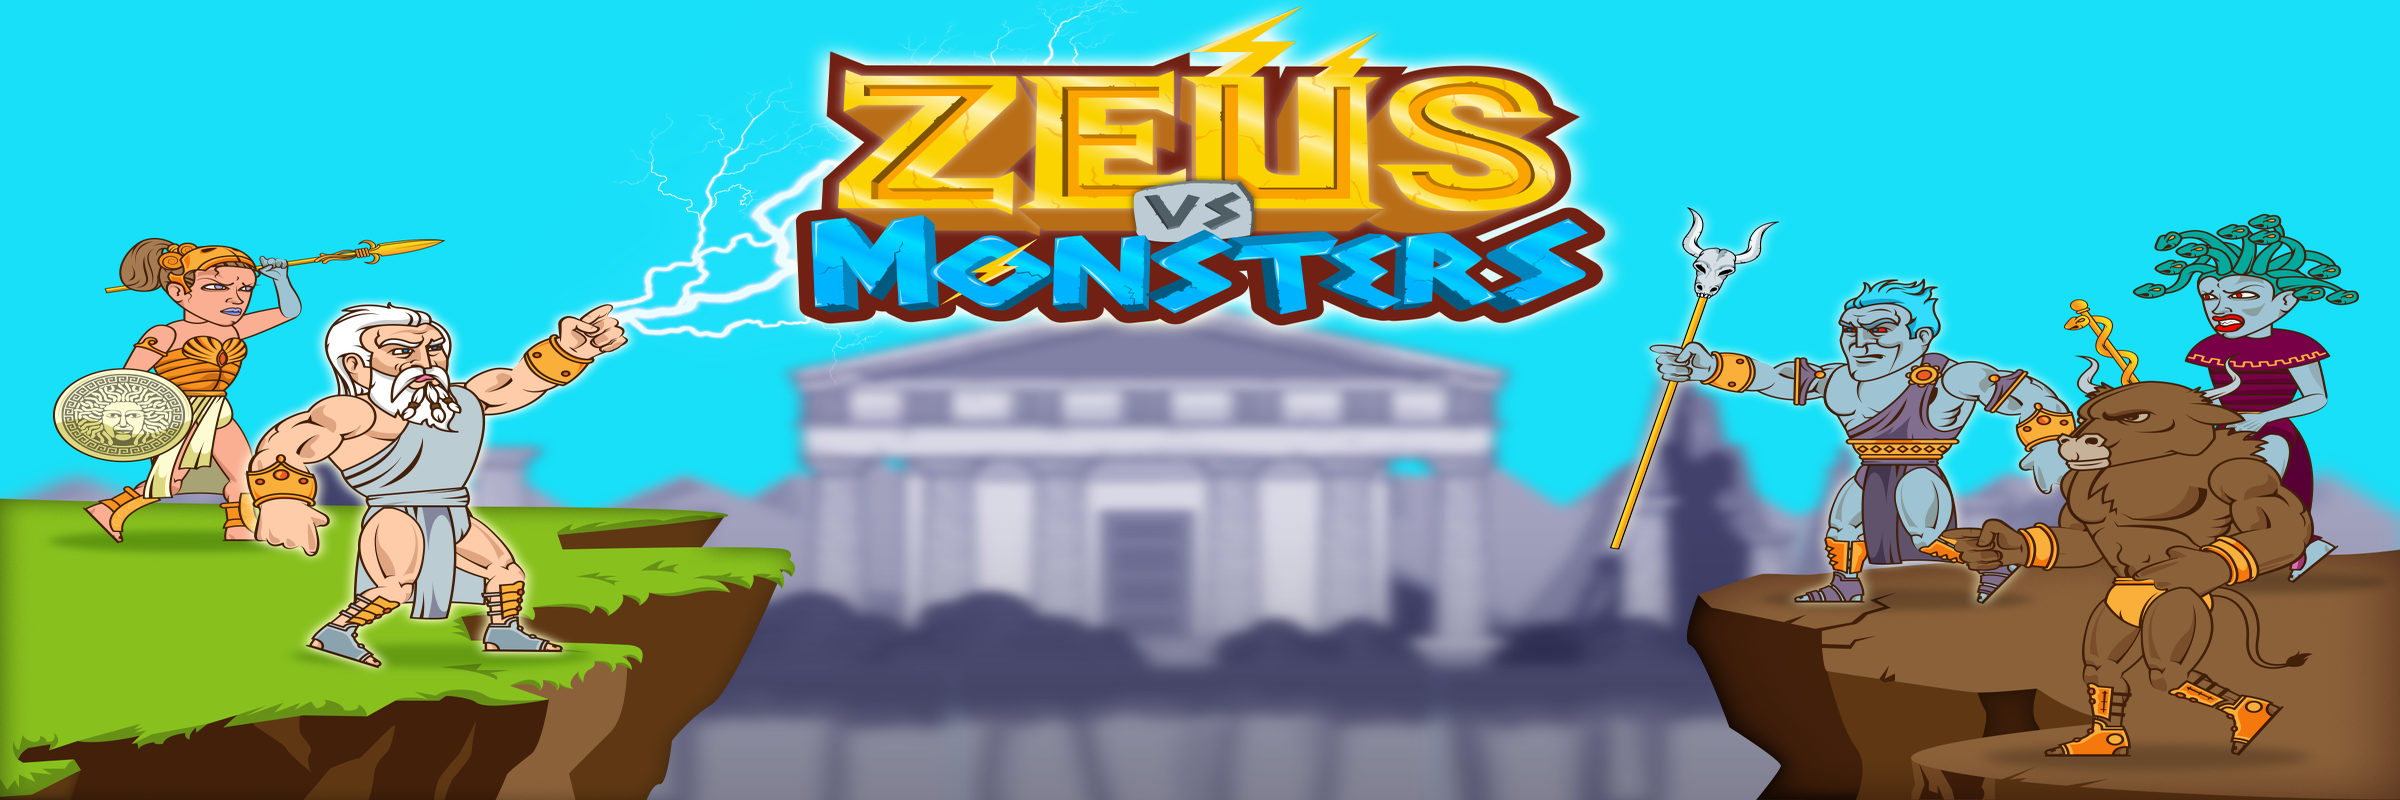 Zeus vs Monsters - Math Game